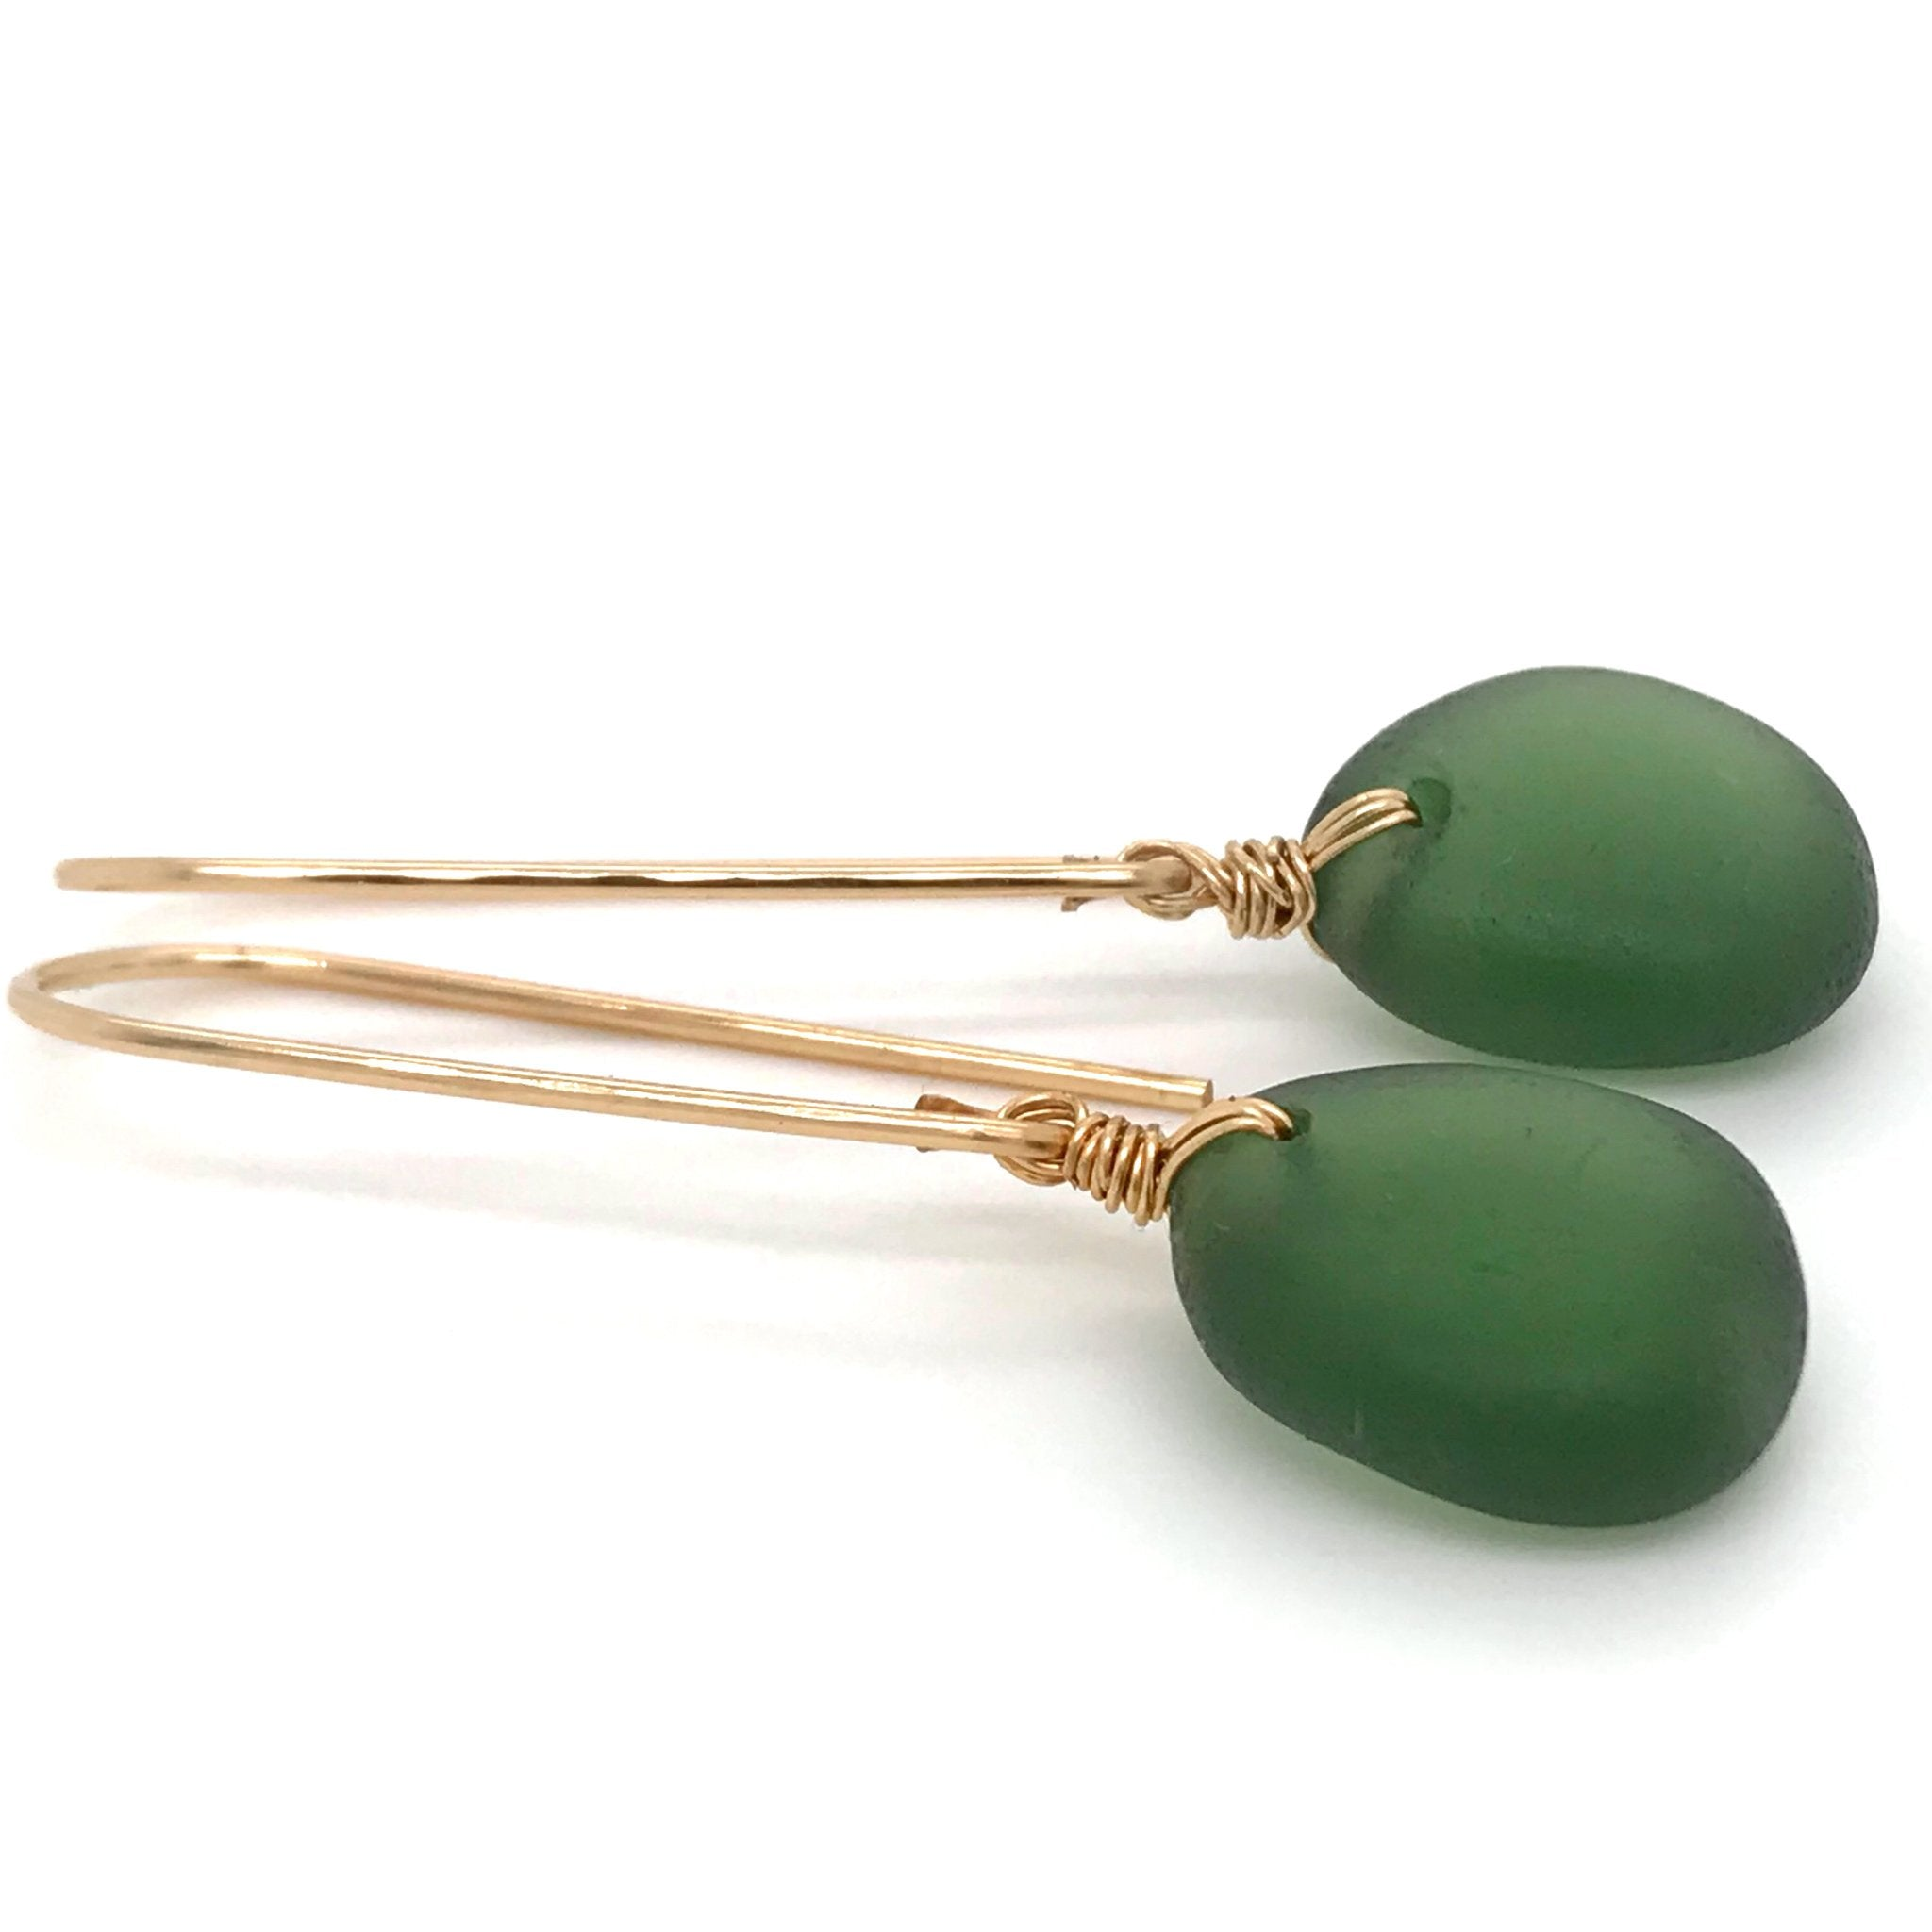 green seaglass earrings on gold drops kriket broadhurst jewellery